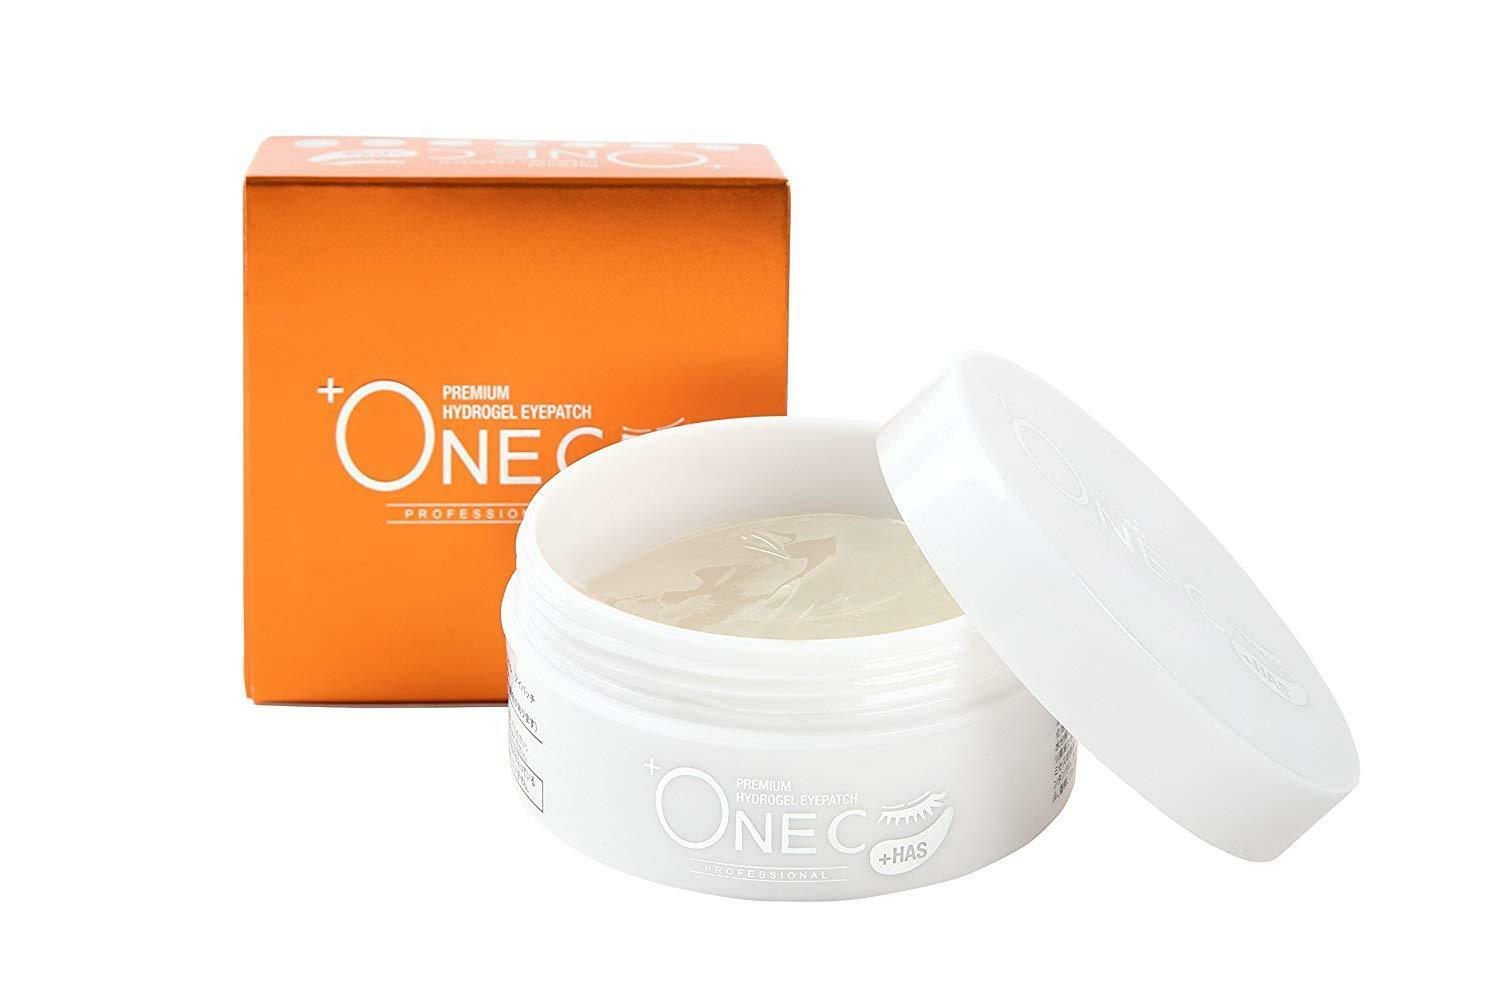 OneC hydrogel eye patch by Amberseed